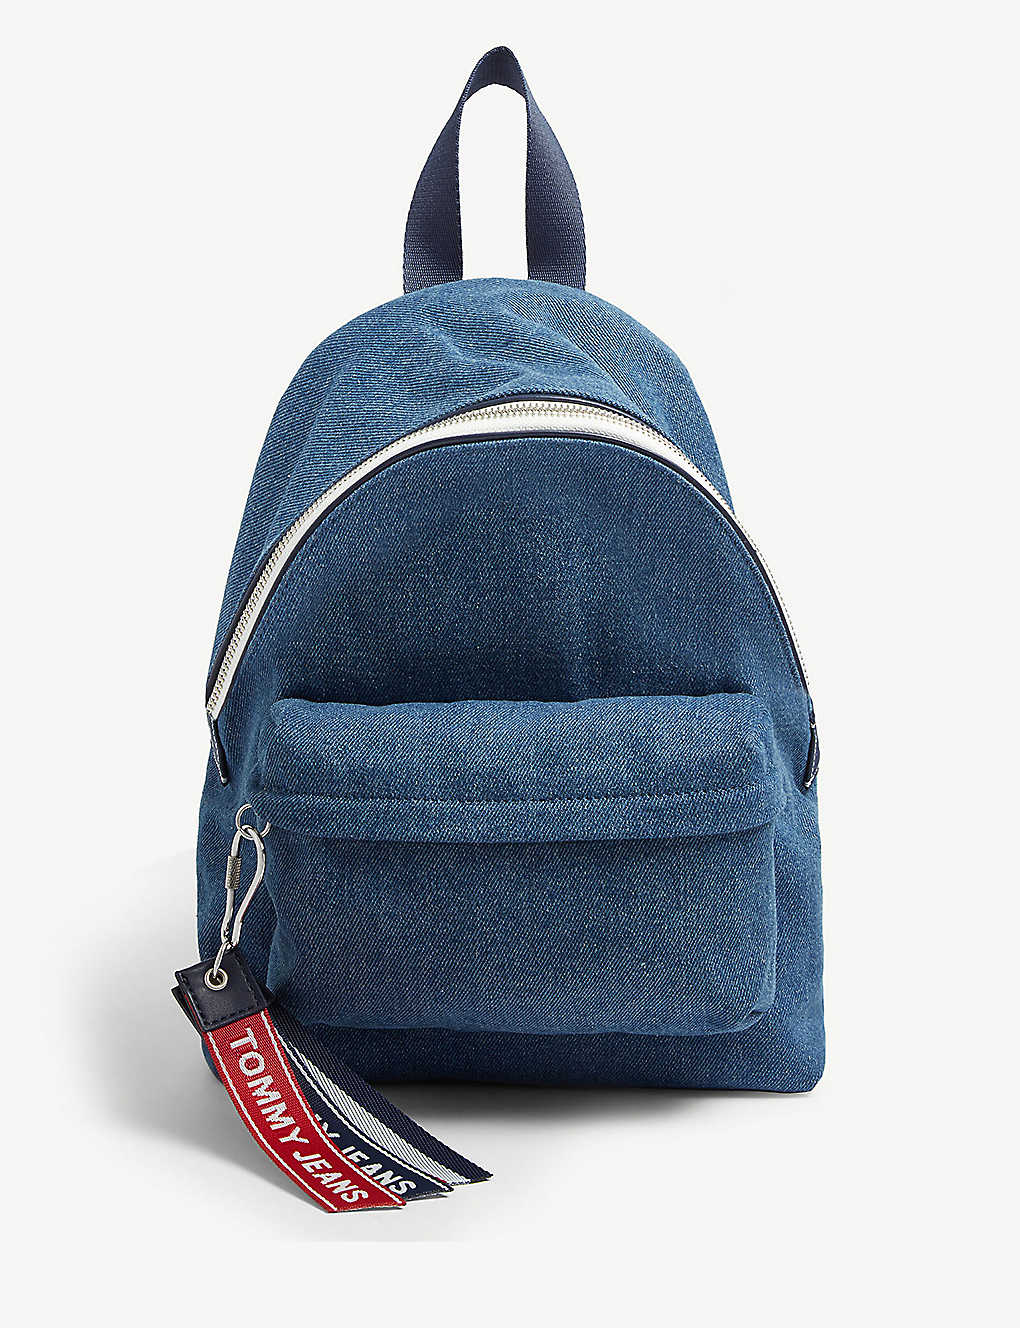 55d7dacc932307 TOMMY JEANS - TJ small logo tape backpack